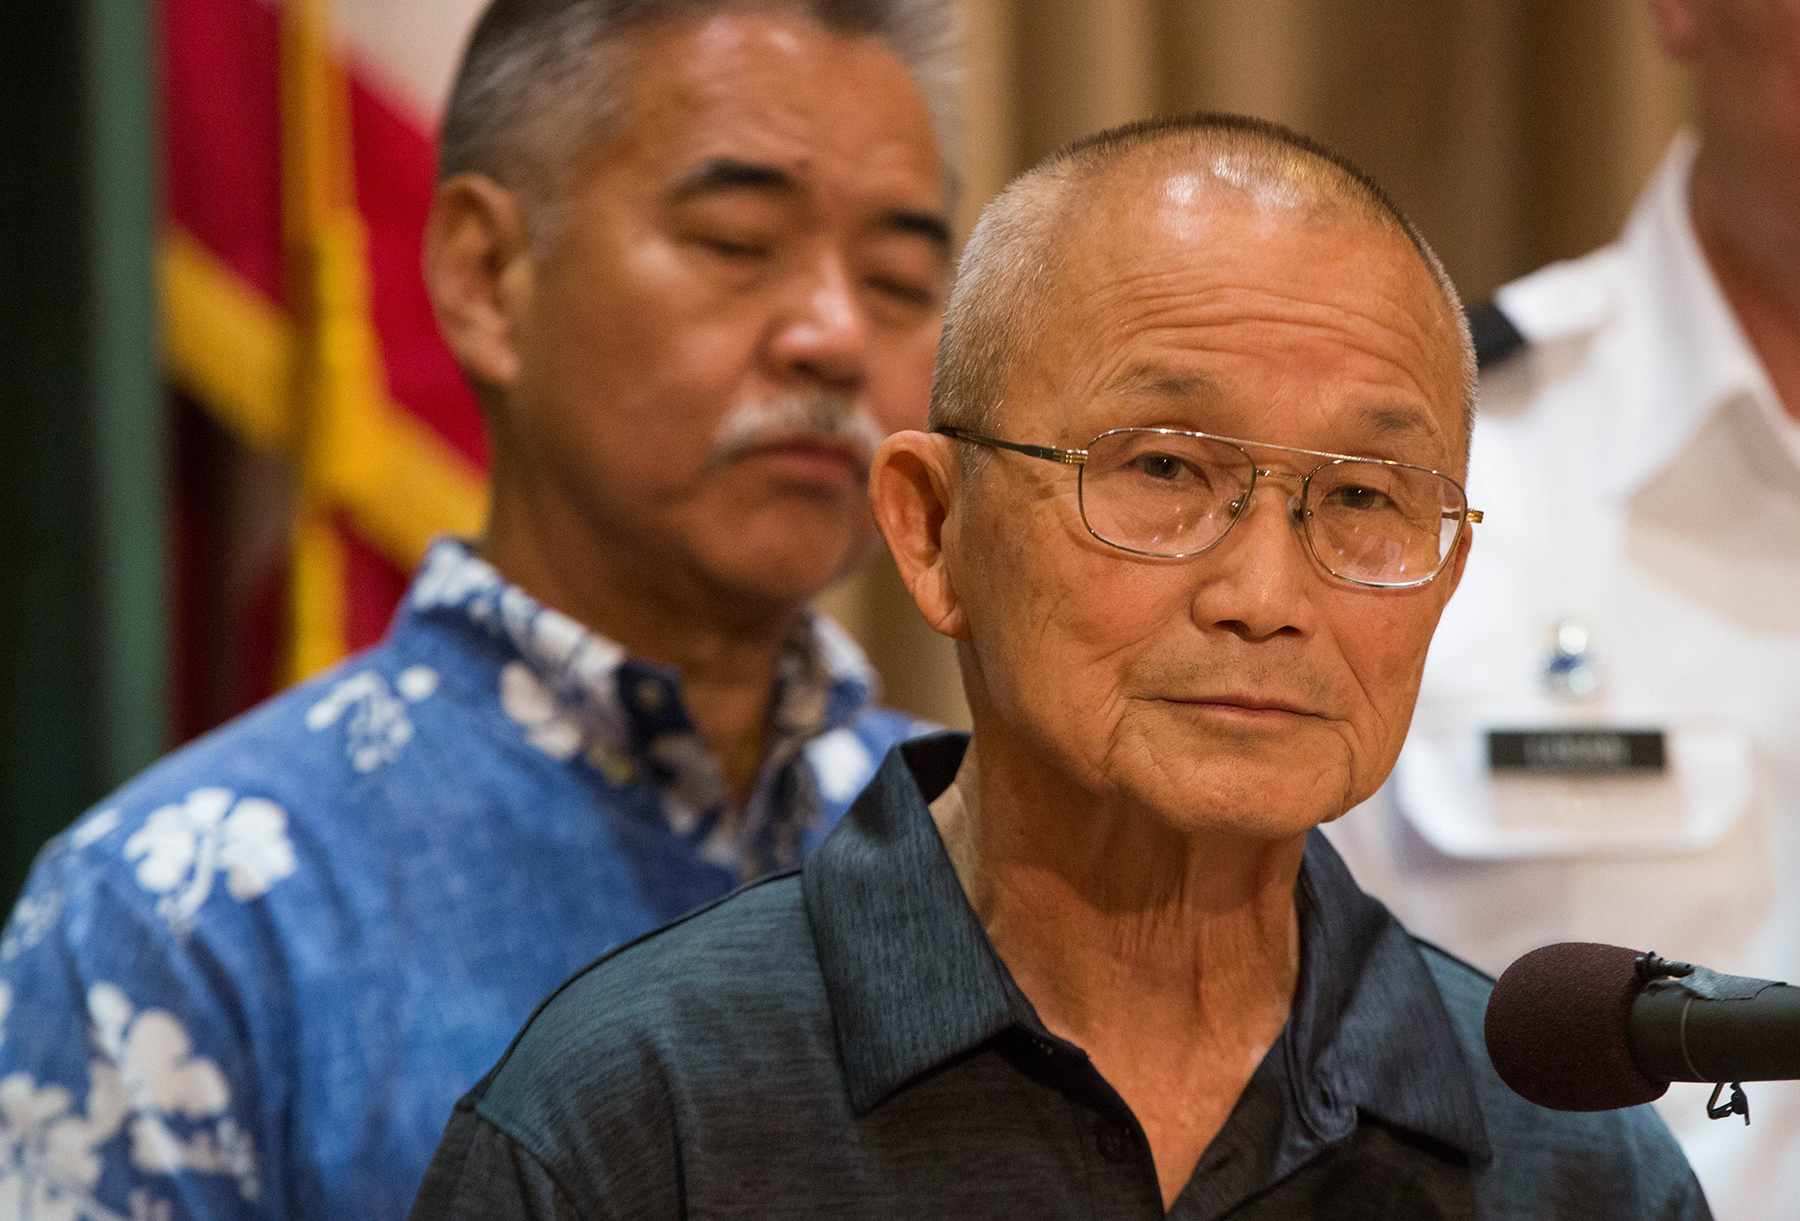 <p><strong>AFTERMATH:</strong> It was left to Gov. David Ige, left, and Vern Miyagi, head of the Hawaii Emergency Management Agency, to try to explain what happened at a news conference two days later. Miyagi soon resigned, and Ige's re-election prospects appeared bleak. / Anthony Quintano.</p>